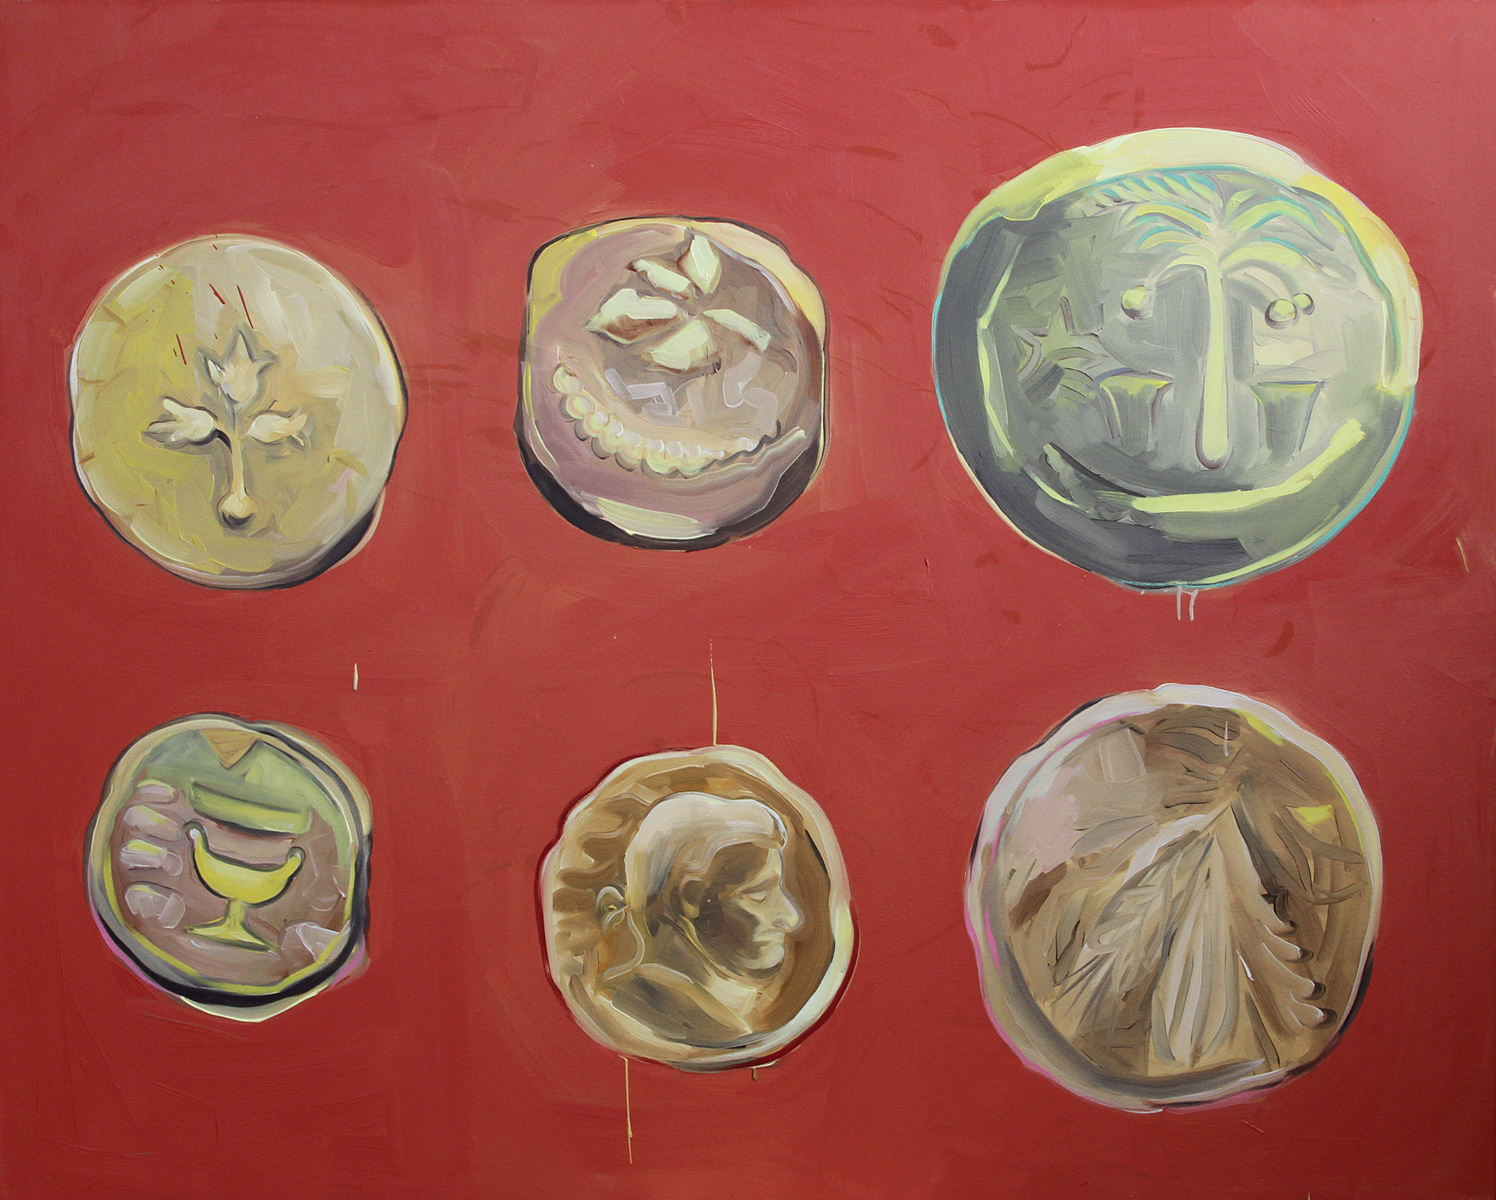 Untitled (Coins)